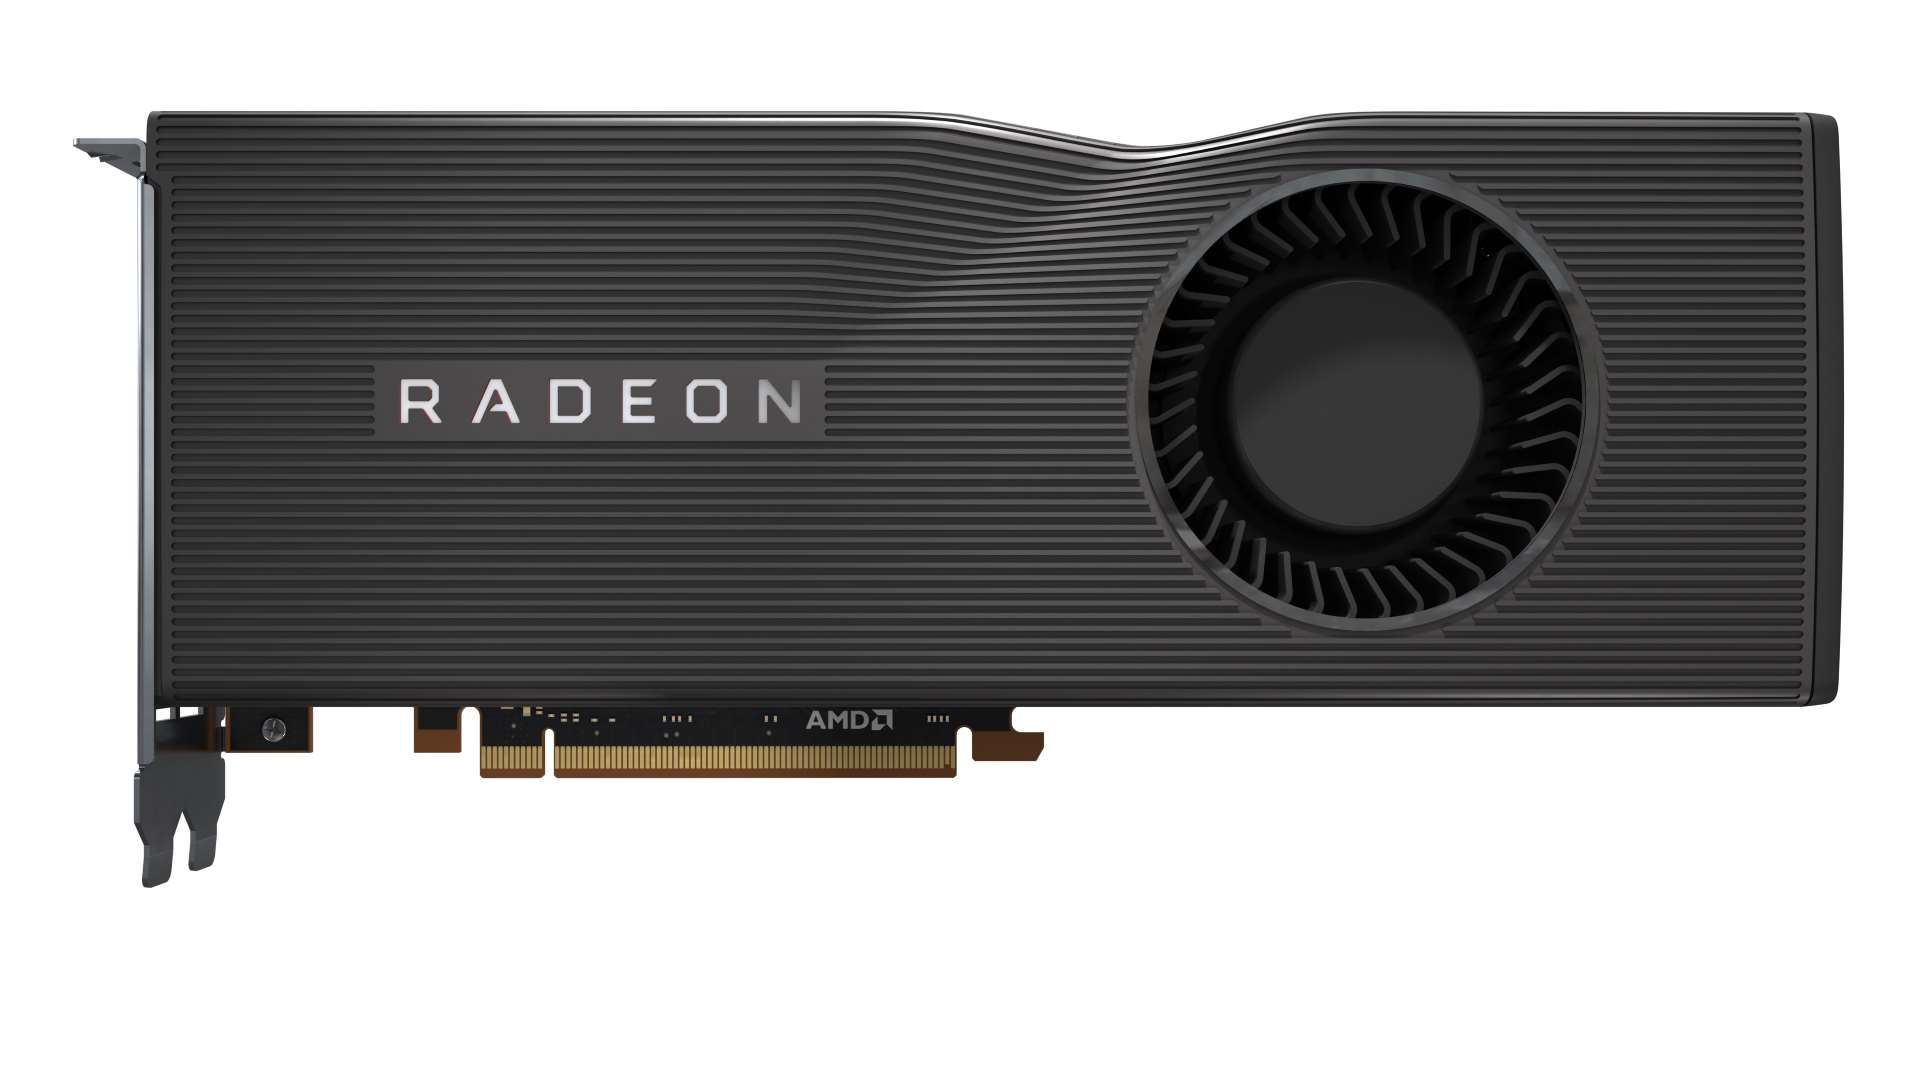 AMD Radeon RX 5700 XT release date, price, specs, and performance